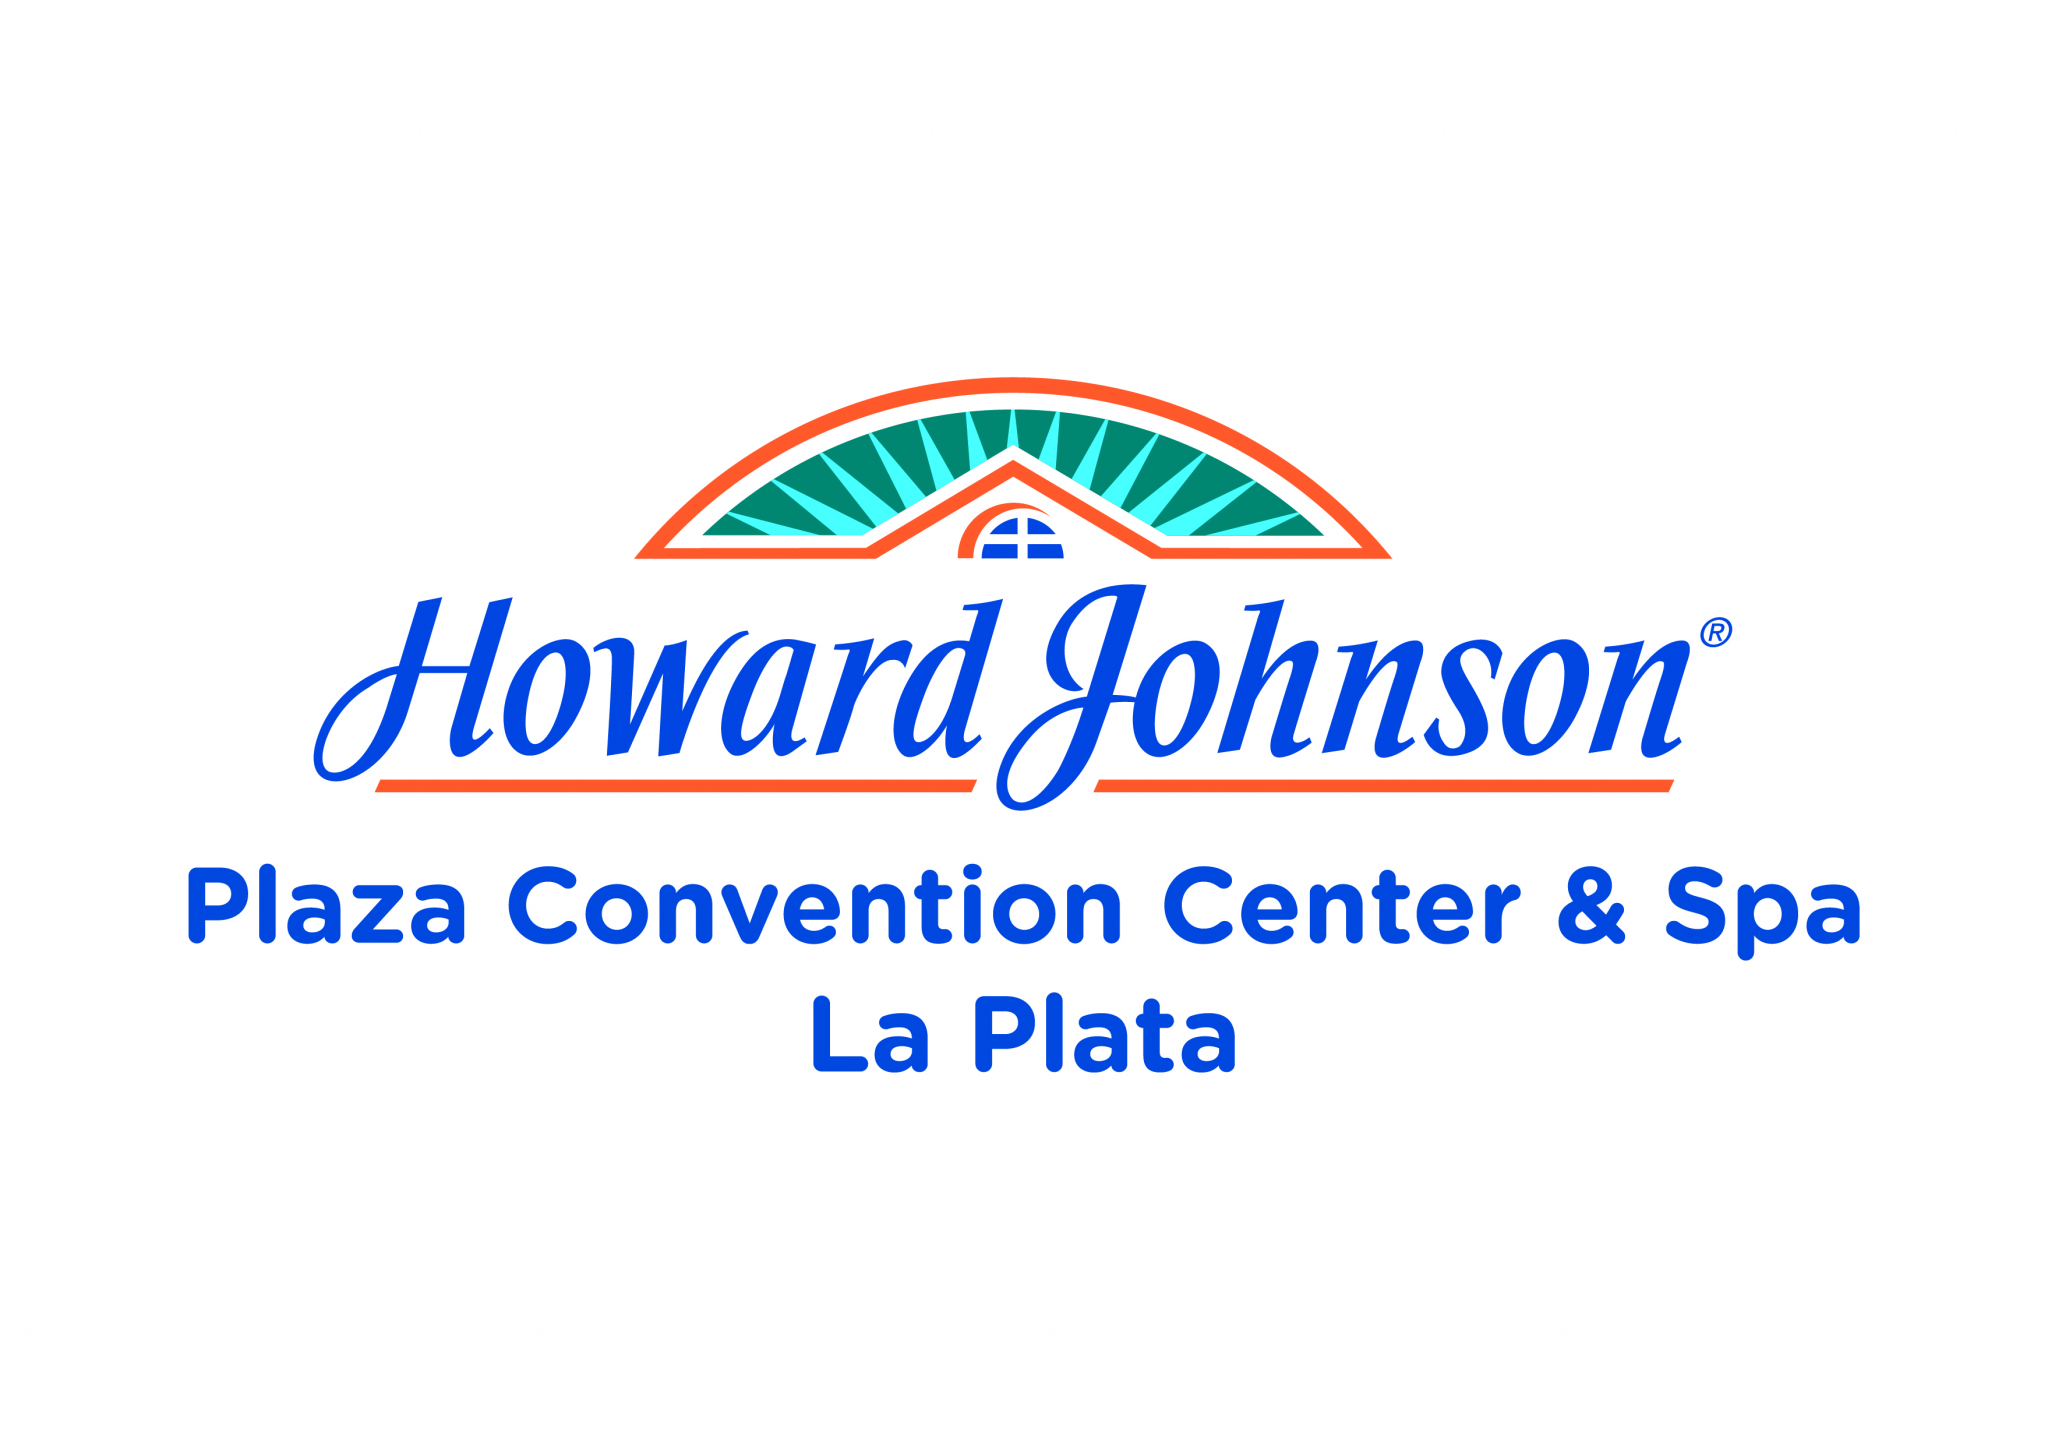 HOWARD JOHNSON LA PLATA logo